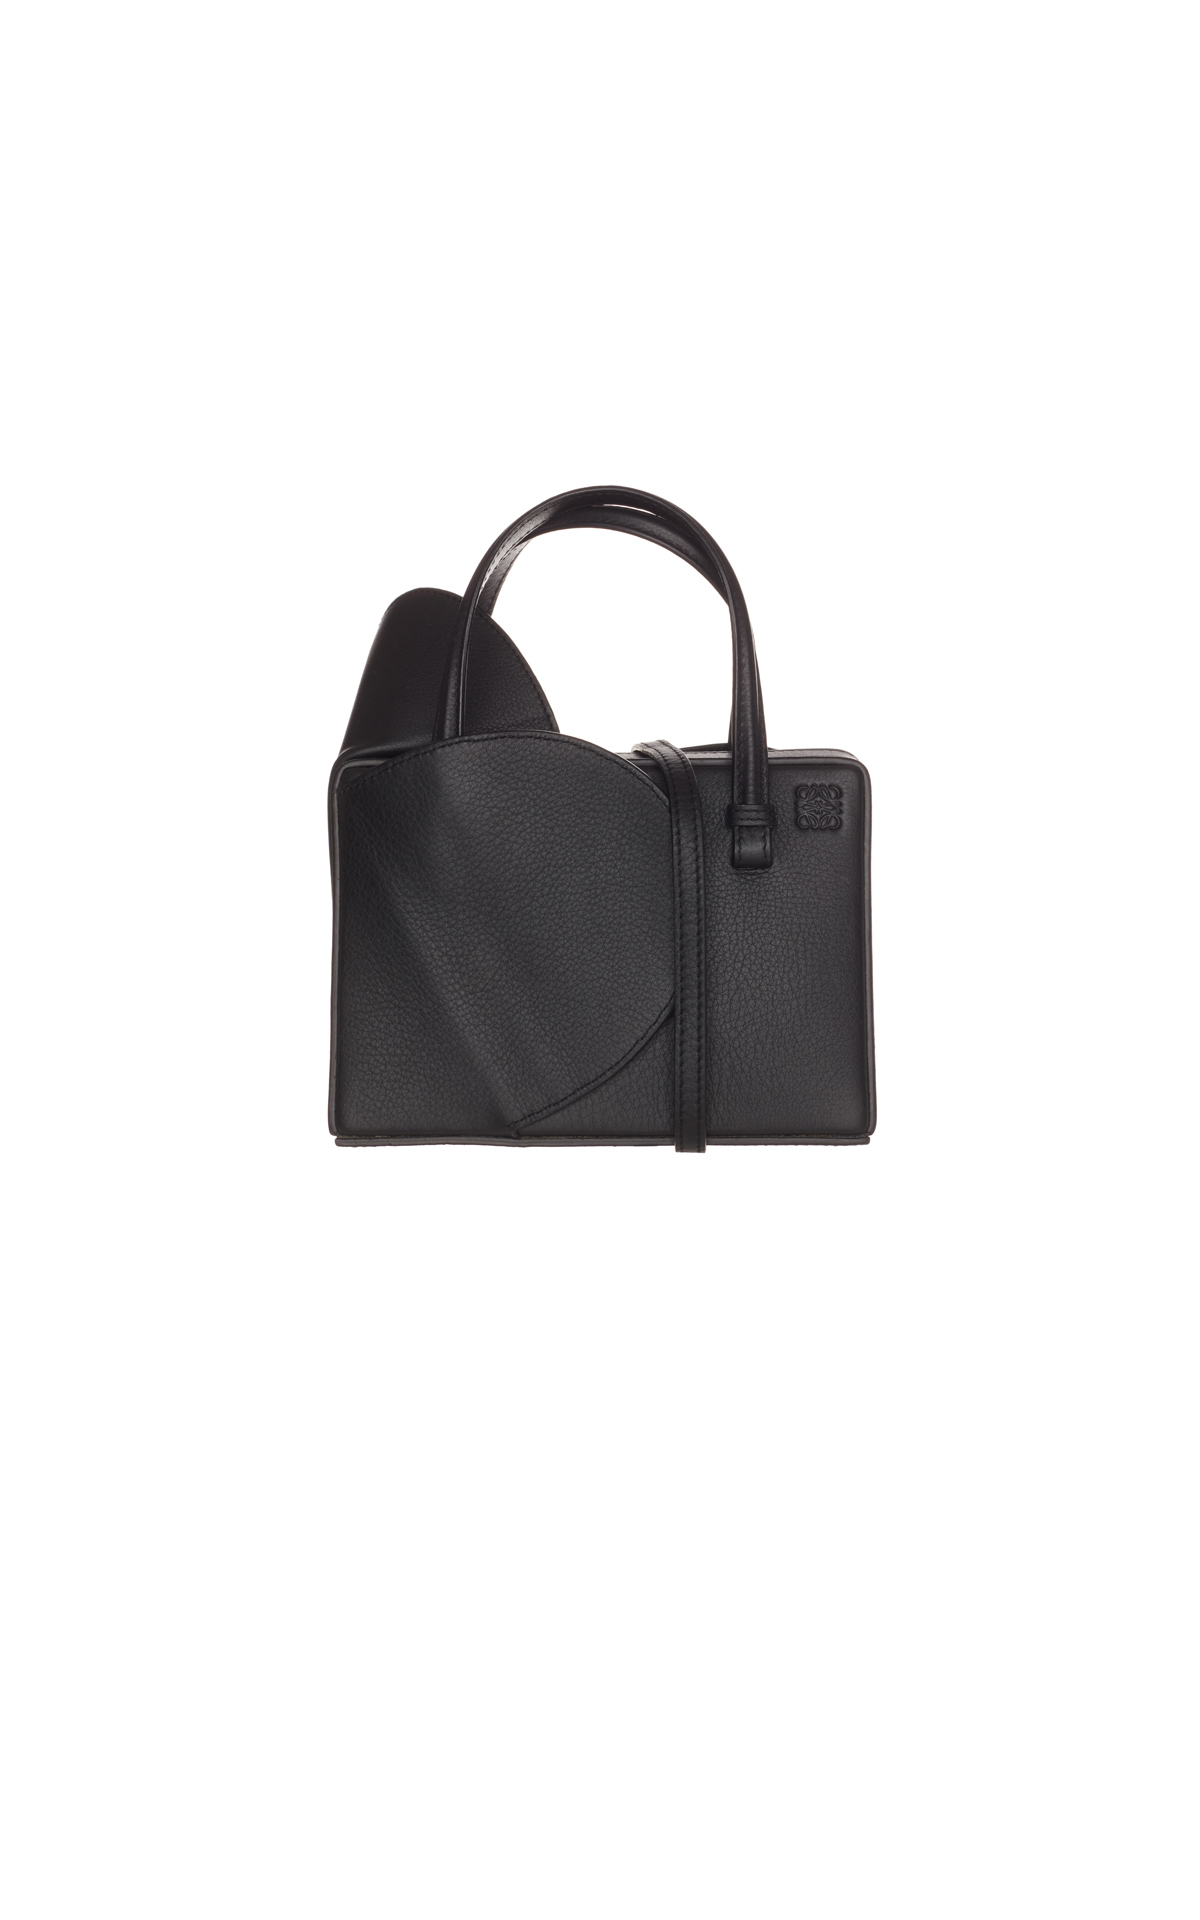 La Vallée Village Loewe Postal Wings Small Black